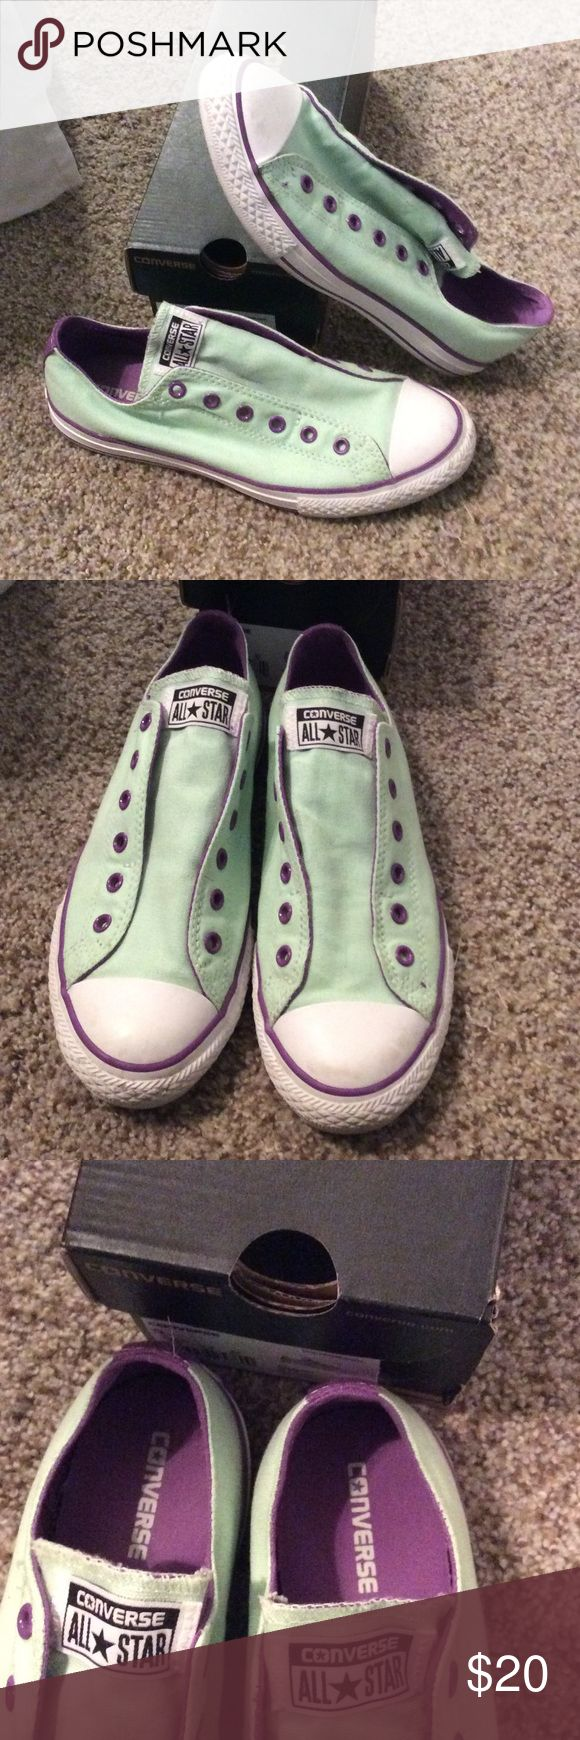 Converse slip on mint and purple Worn a few times. Great condition Shoes Sneakers